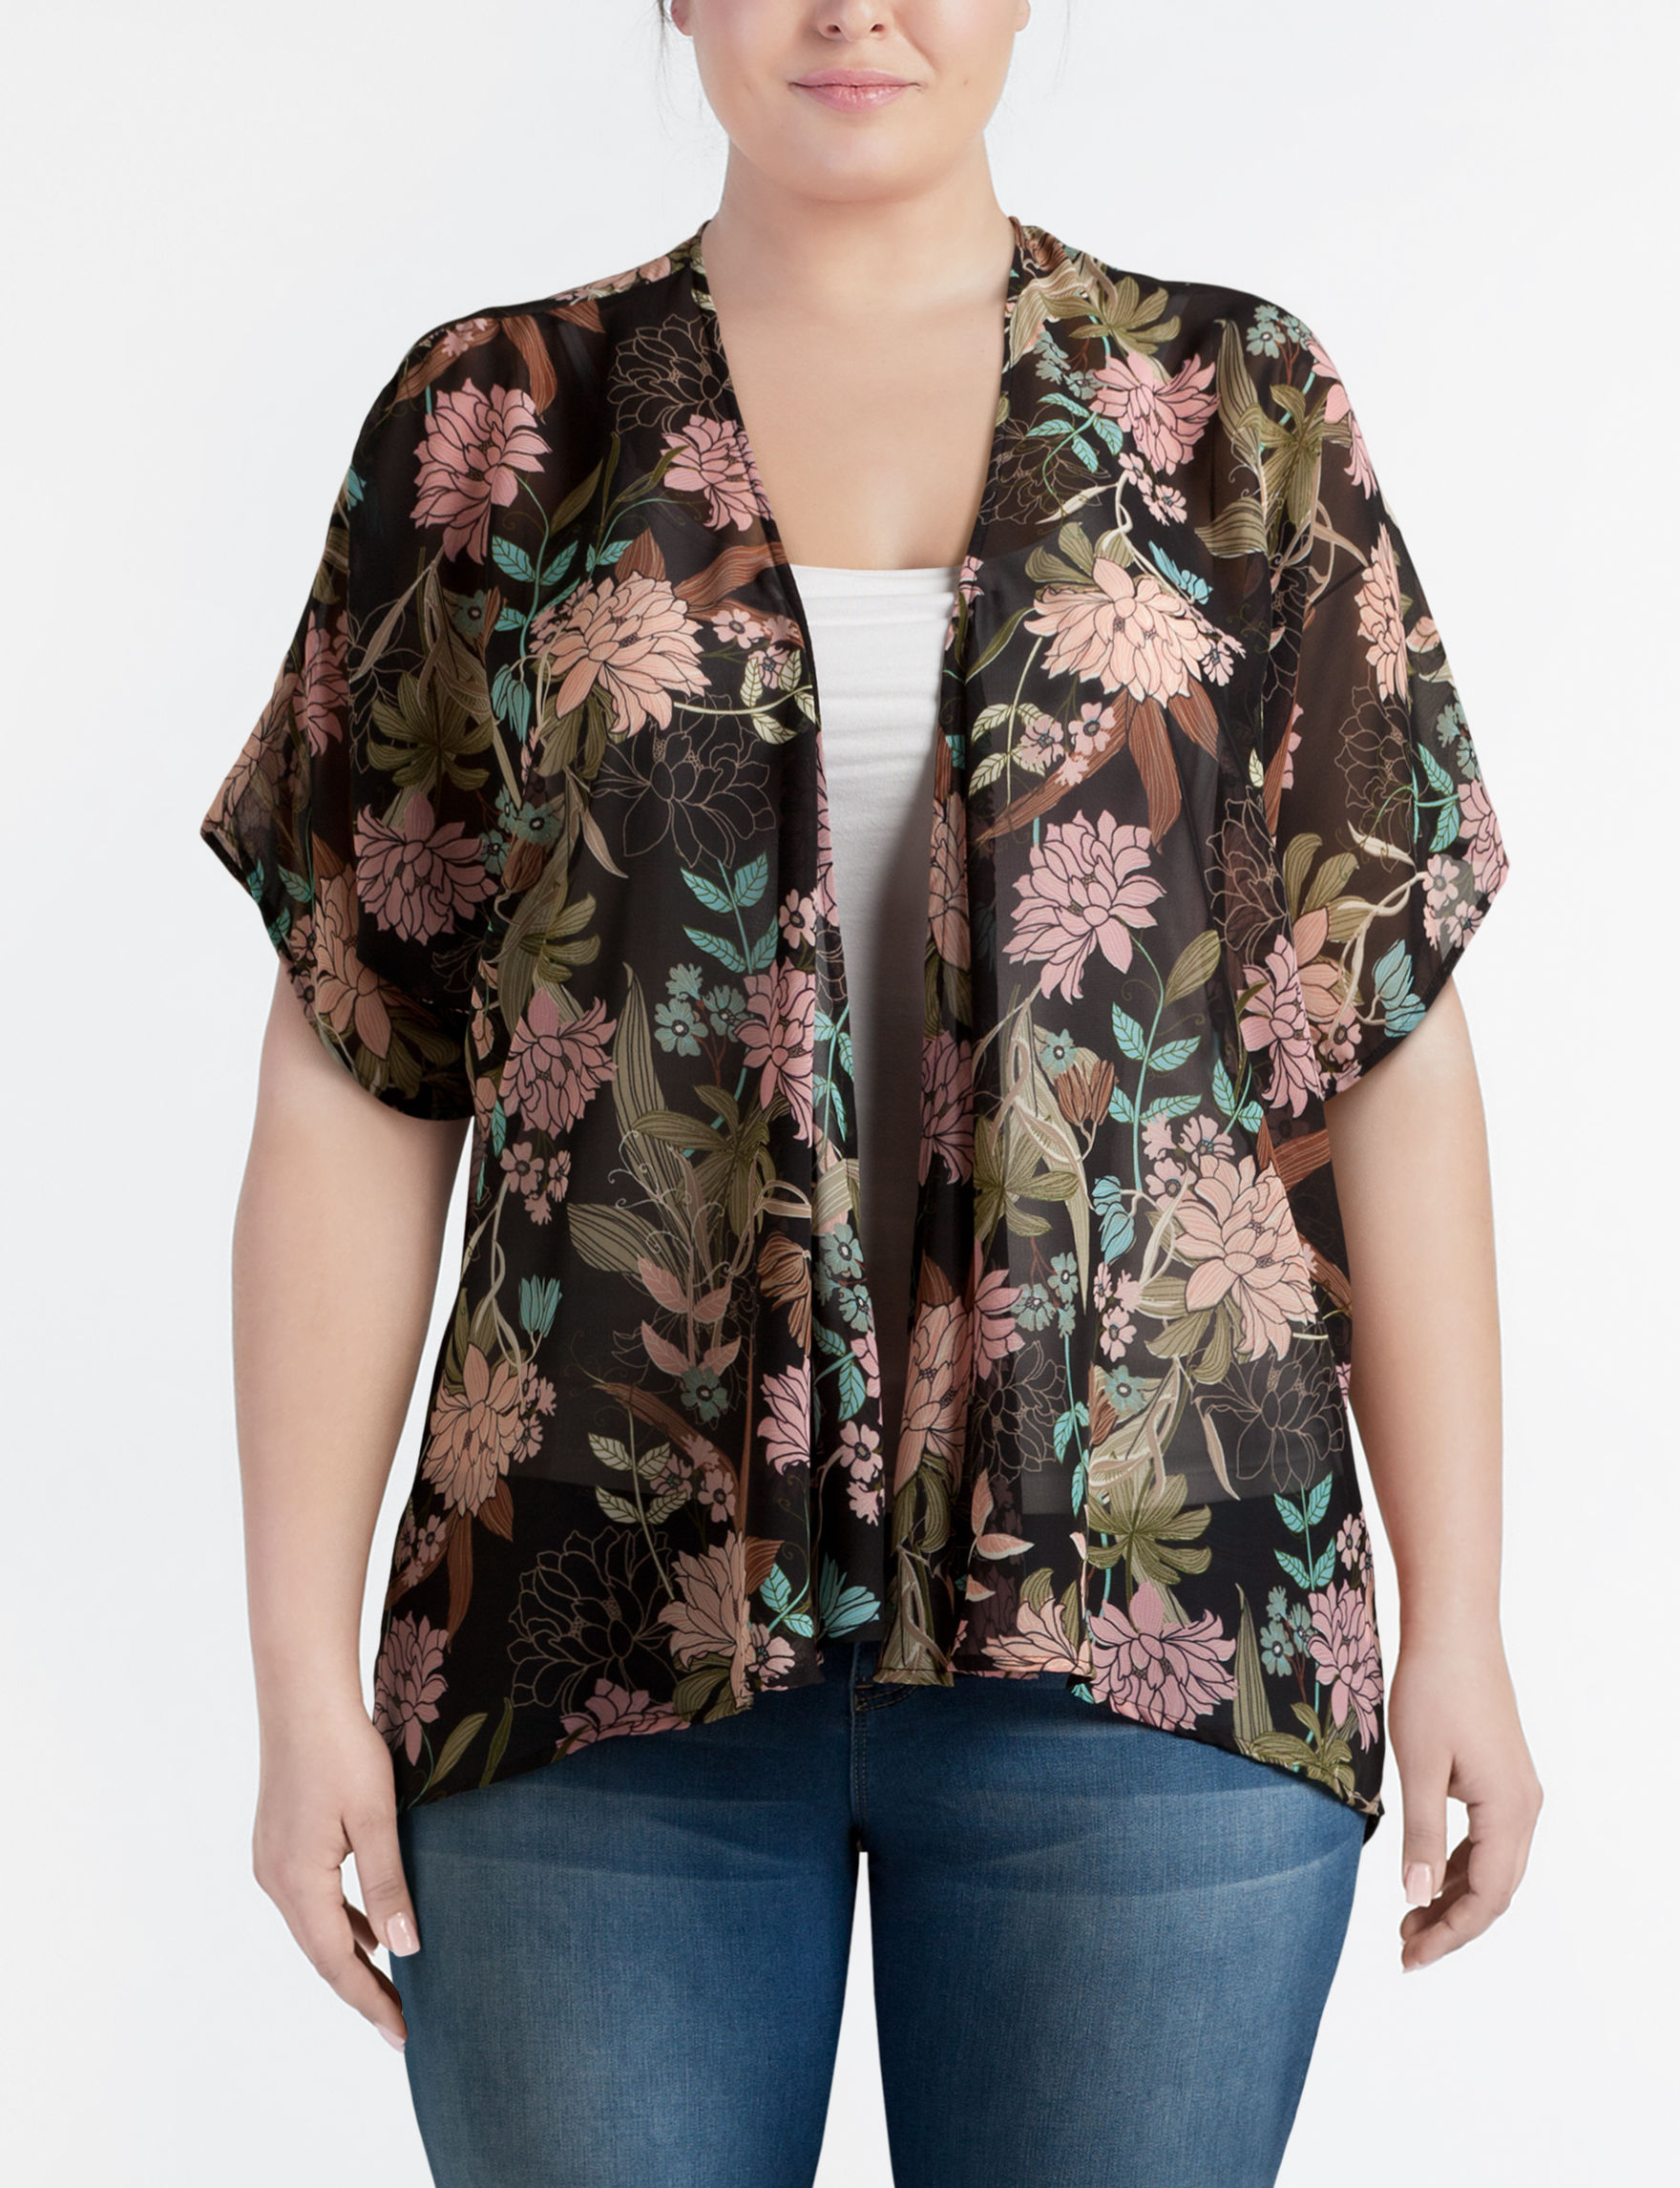 Liberty Love Black Floral